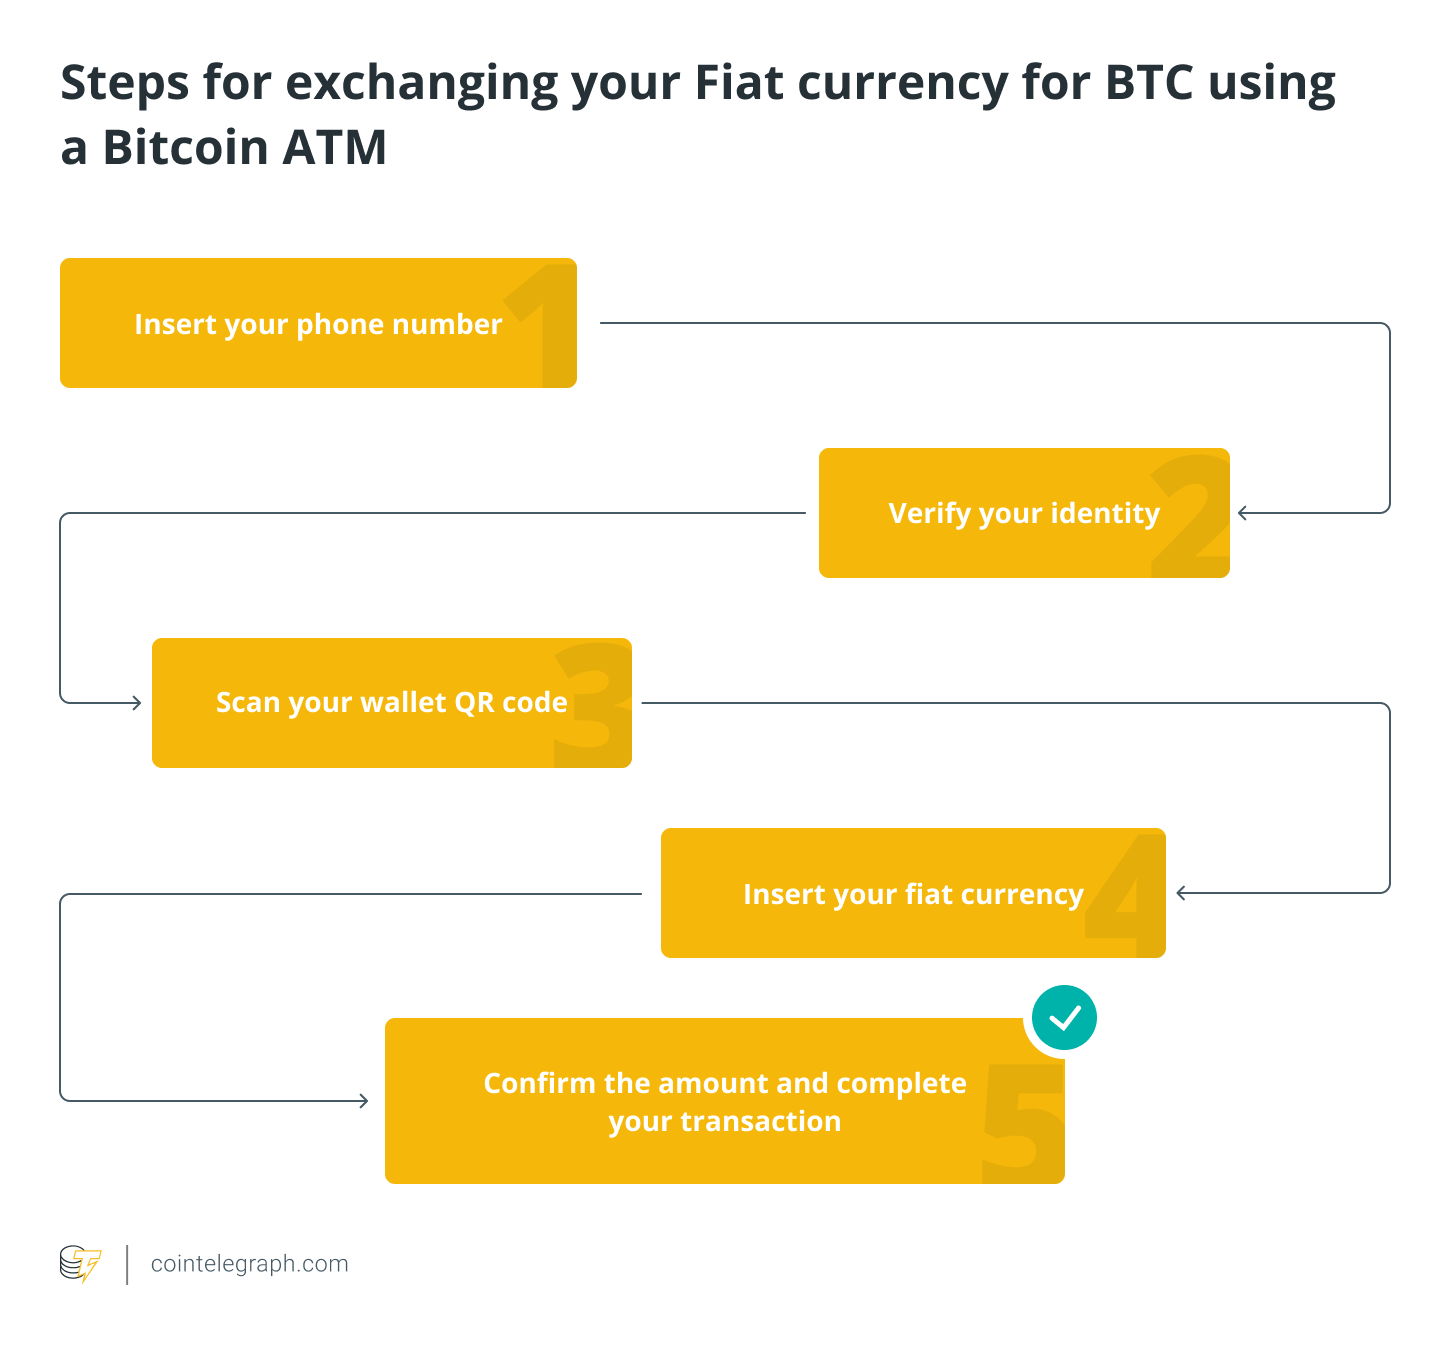 Steps for exchanging your fiat currency for BTC using a Bitcoin ATM